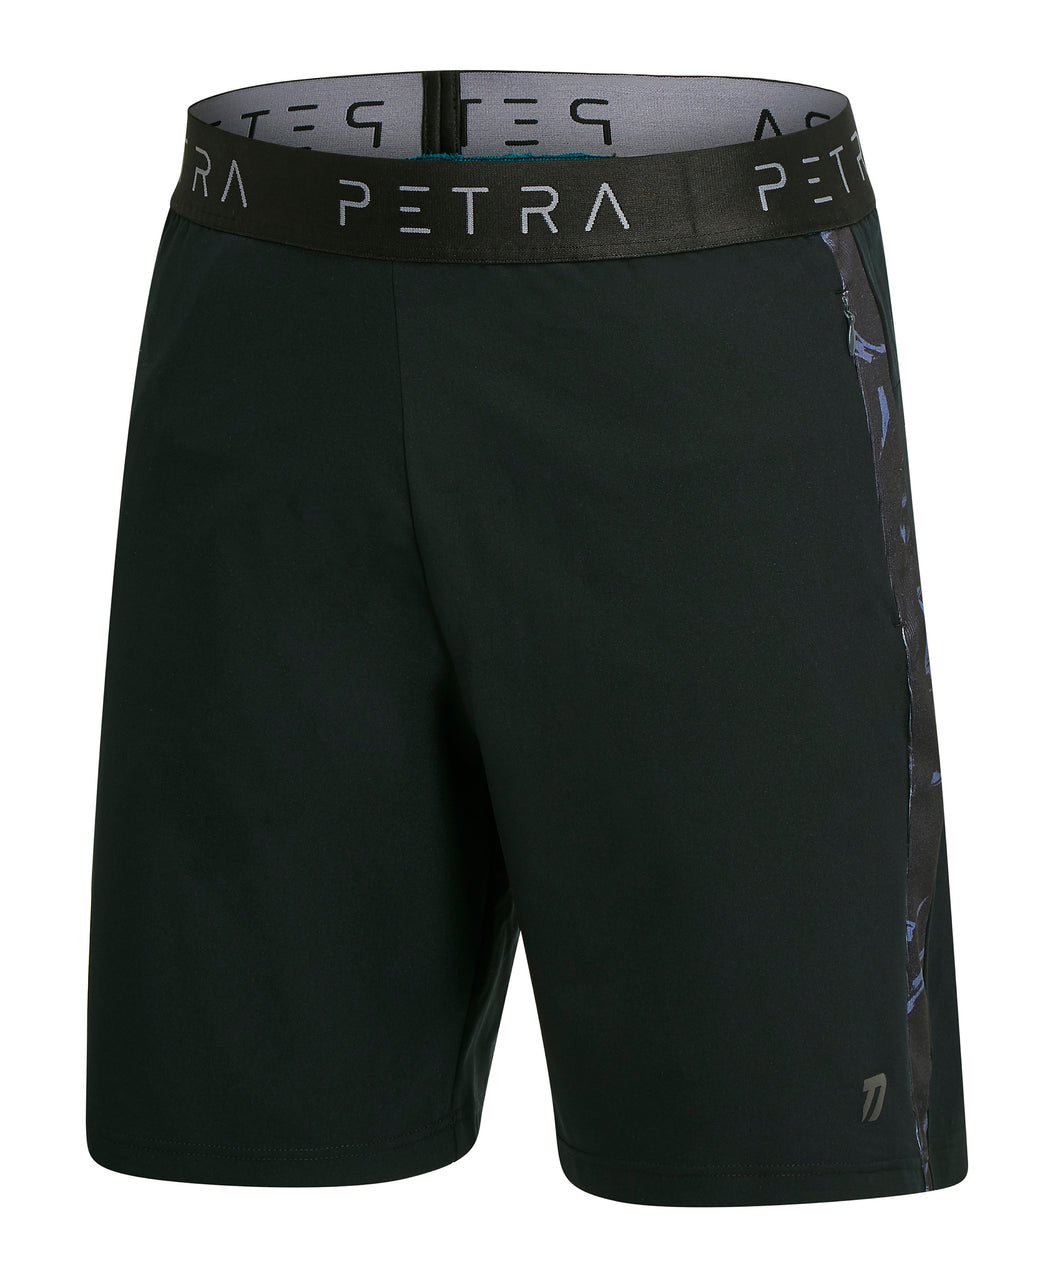 Technical workout shorts front view